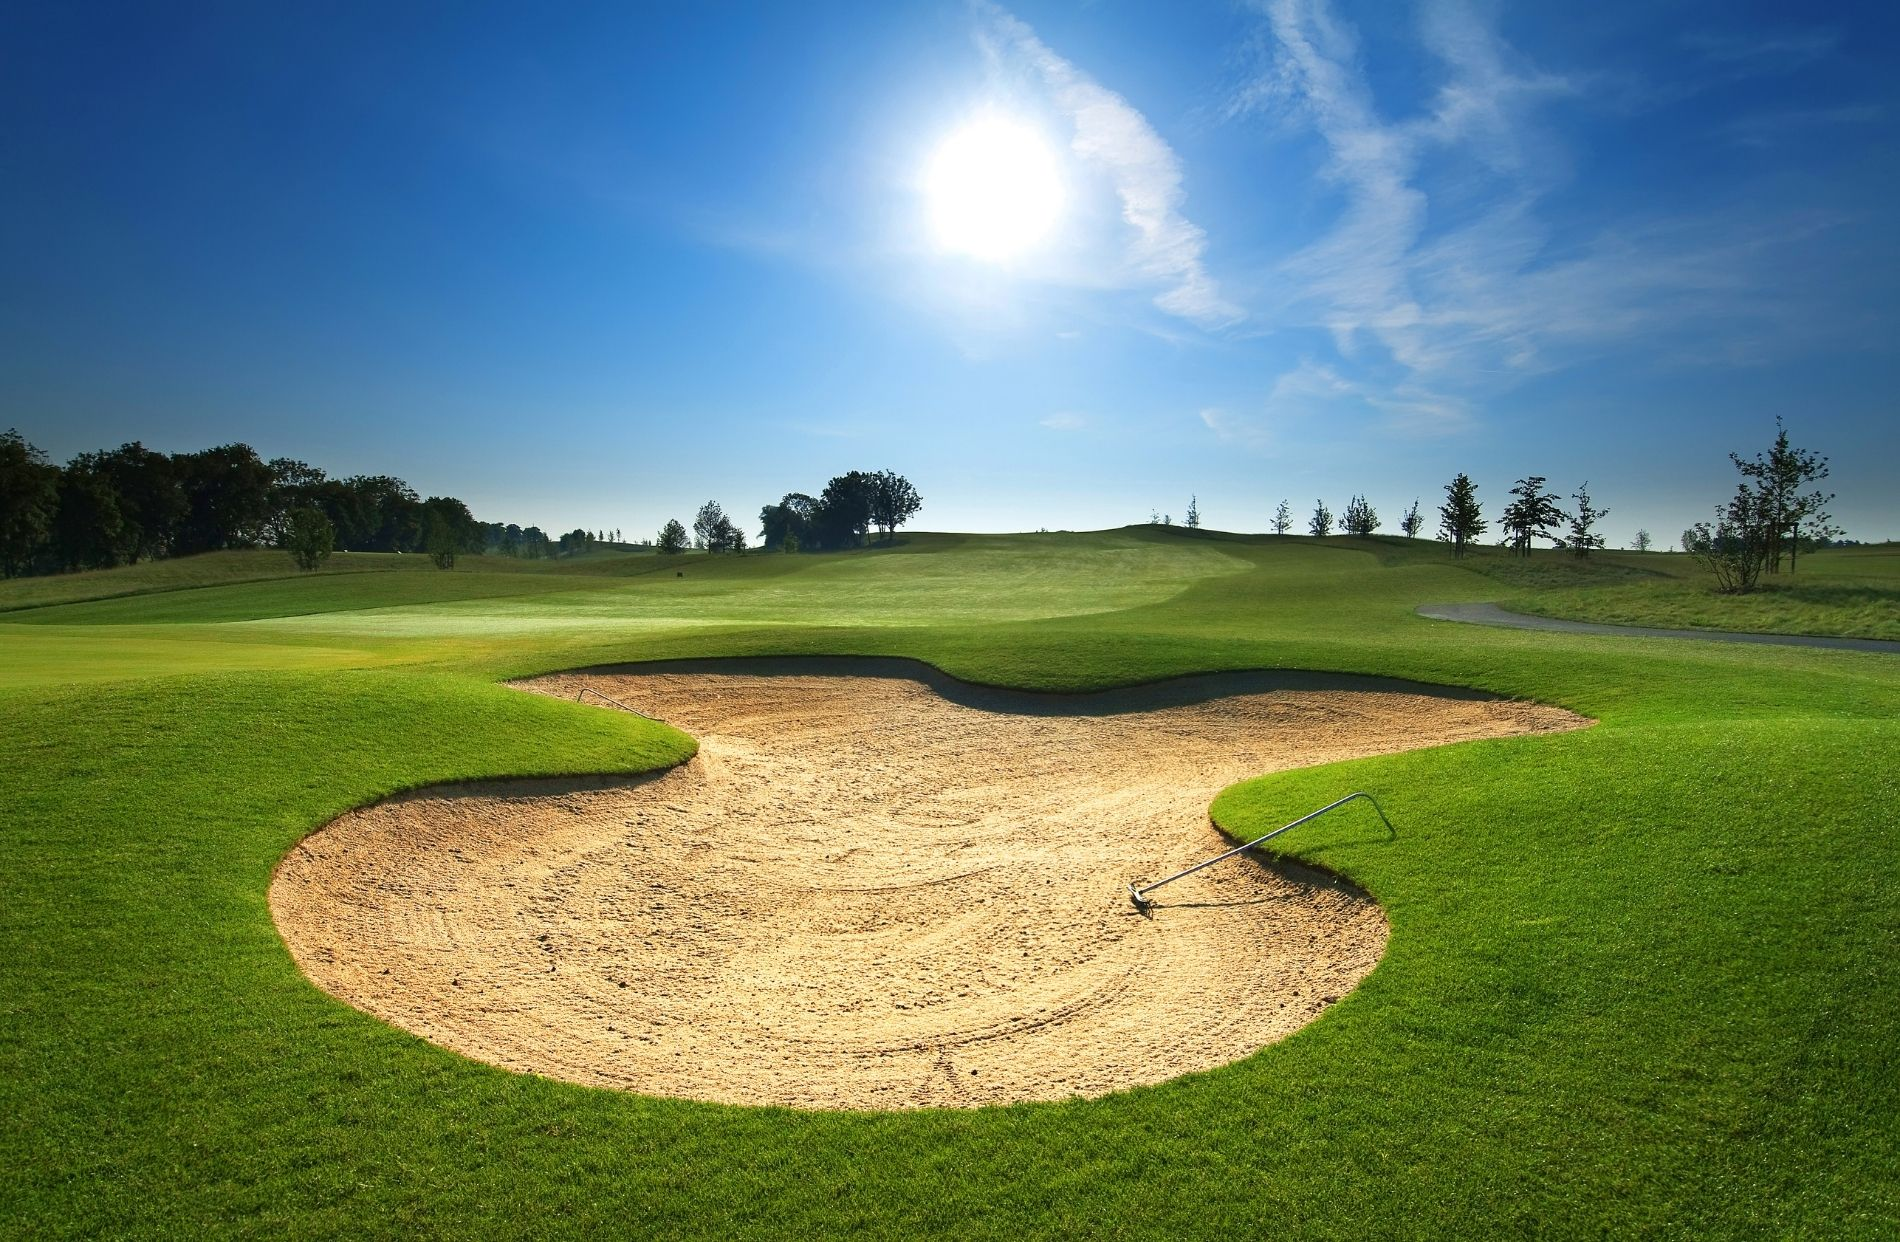 View of golf course, sand trap and blue skies